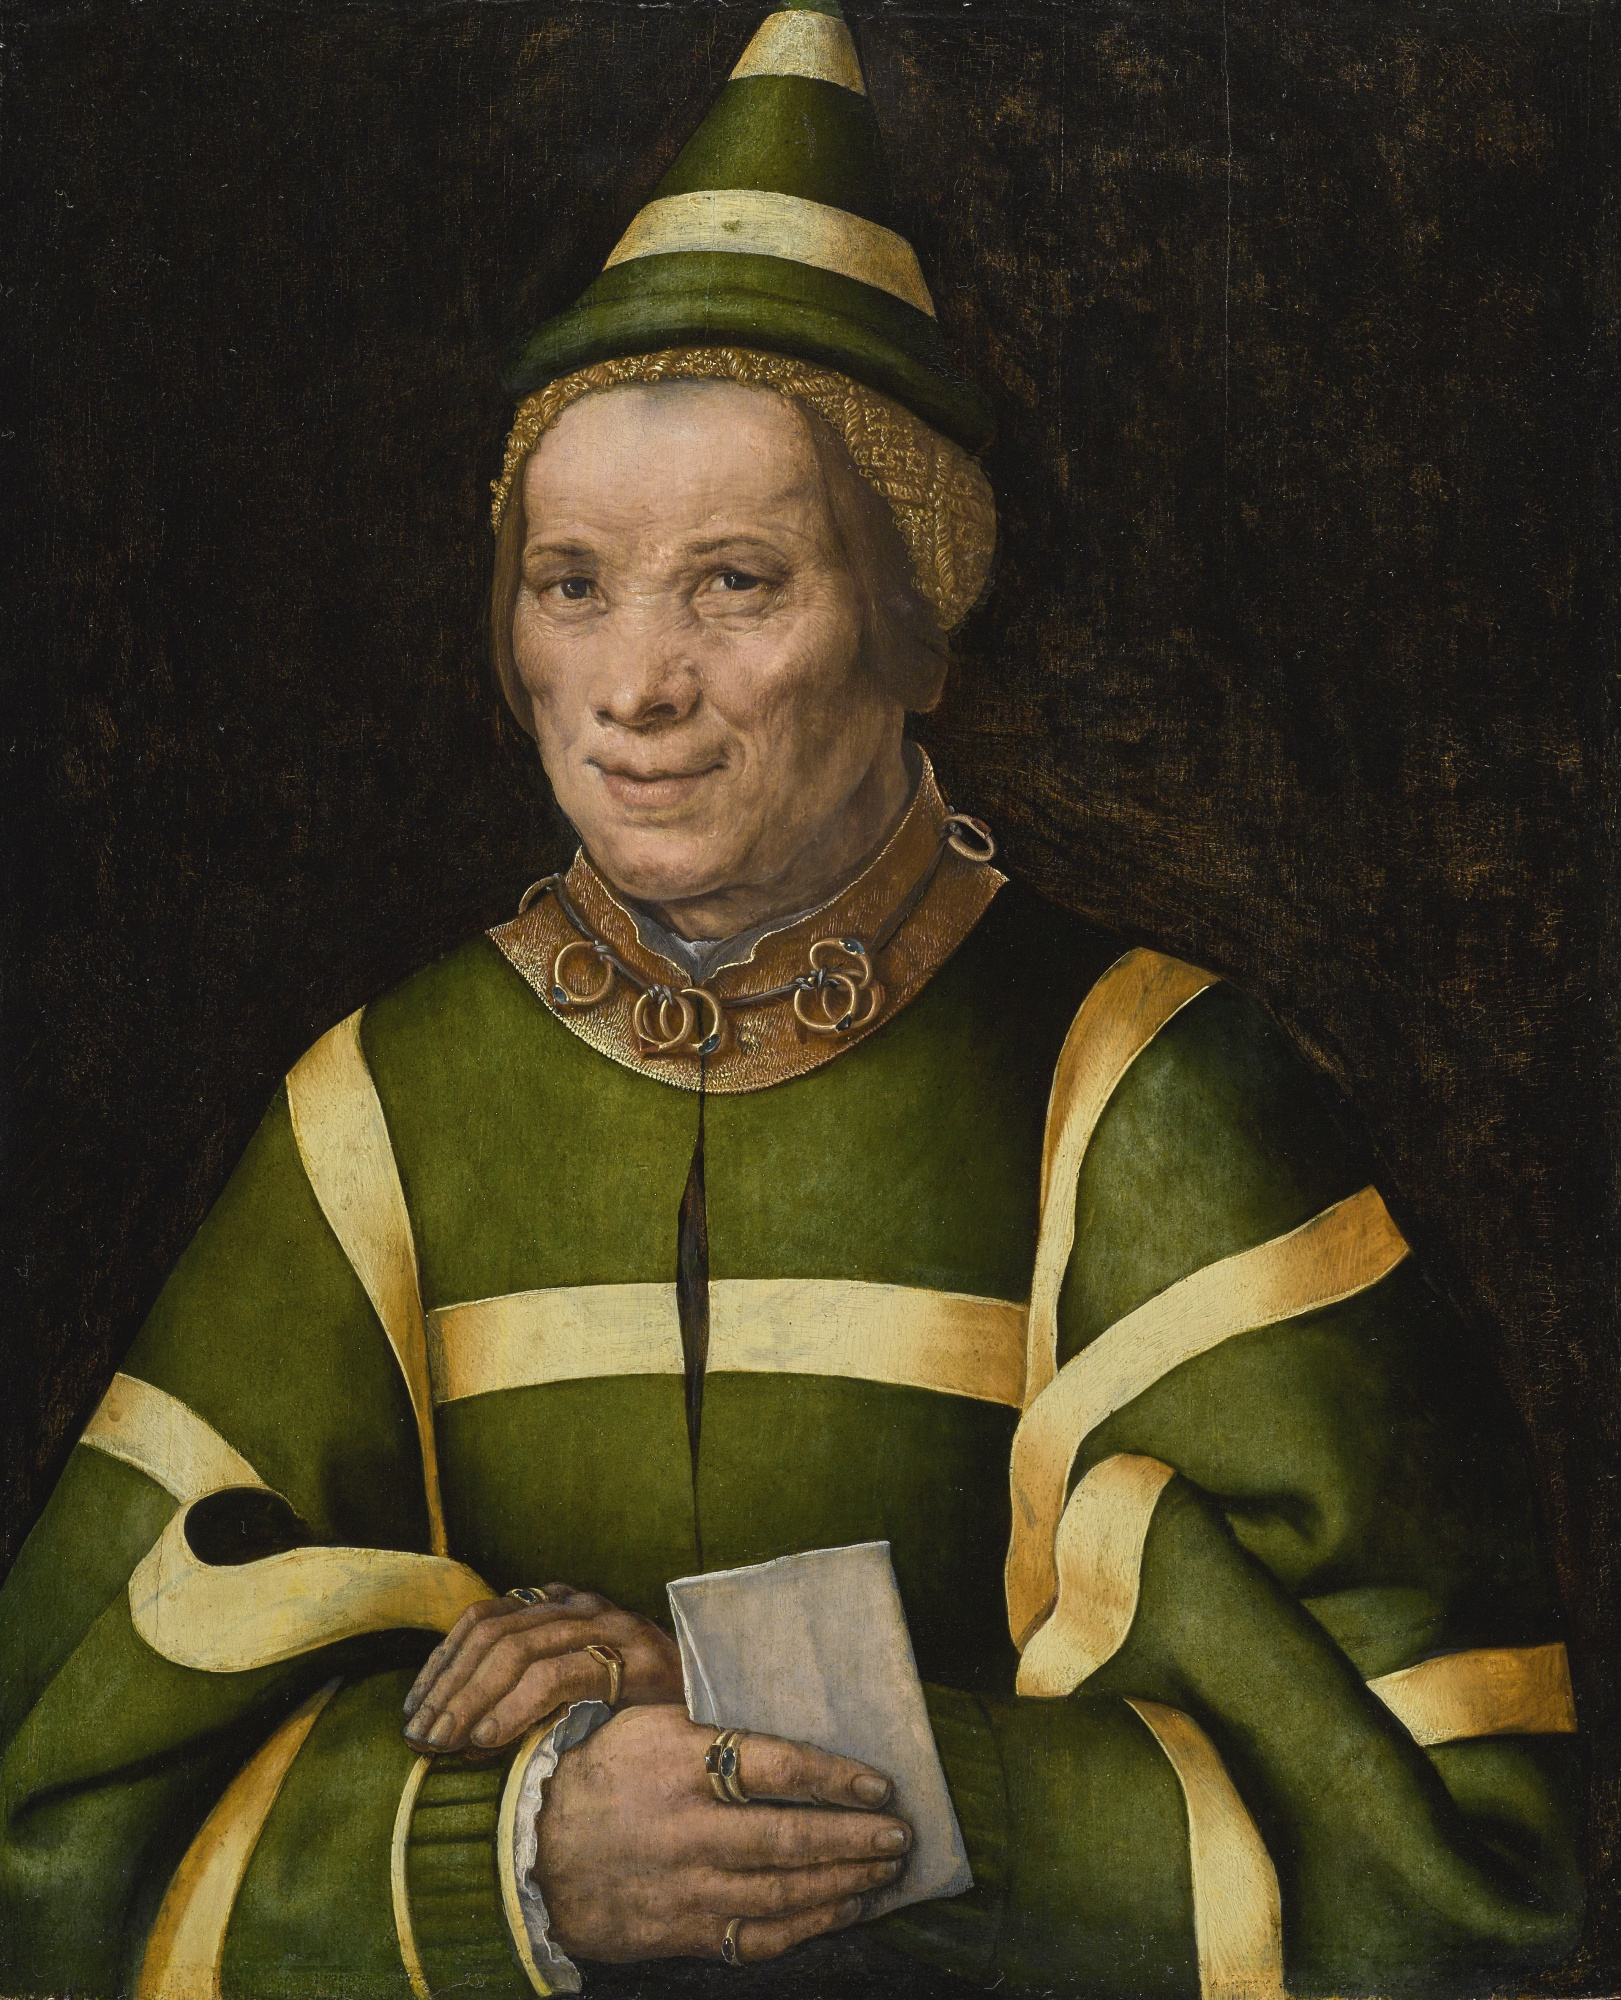 A 16th century oil on oak panel portrait of Elisabet, court fool of Anne of Hungary, painted by Jan Sanders van Hemessen.